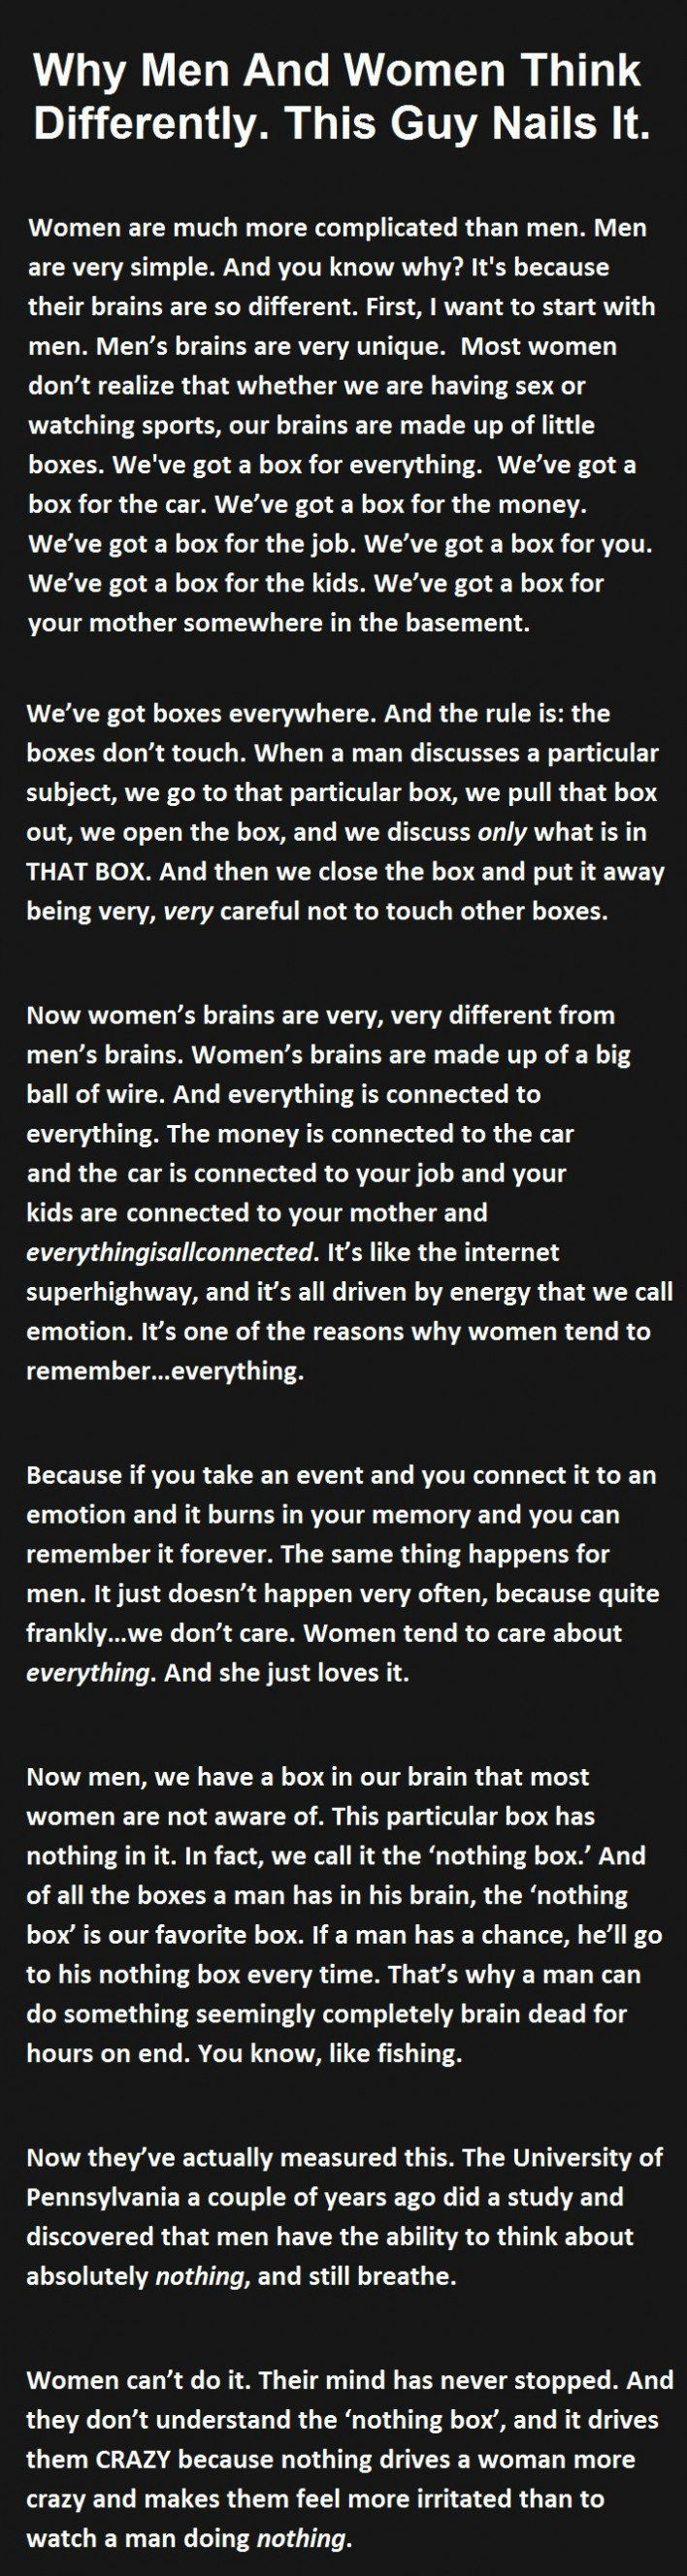 Why Men And Women Think Differently